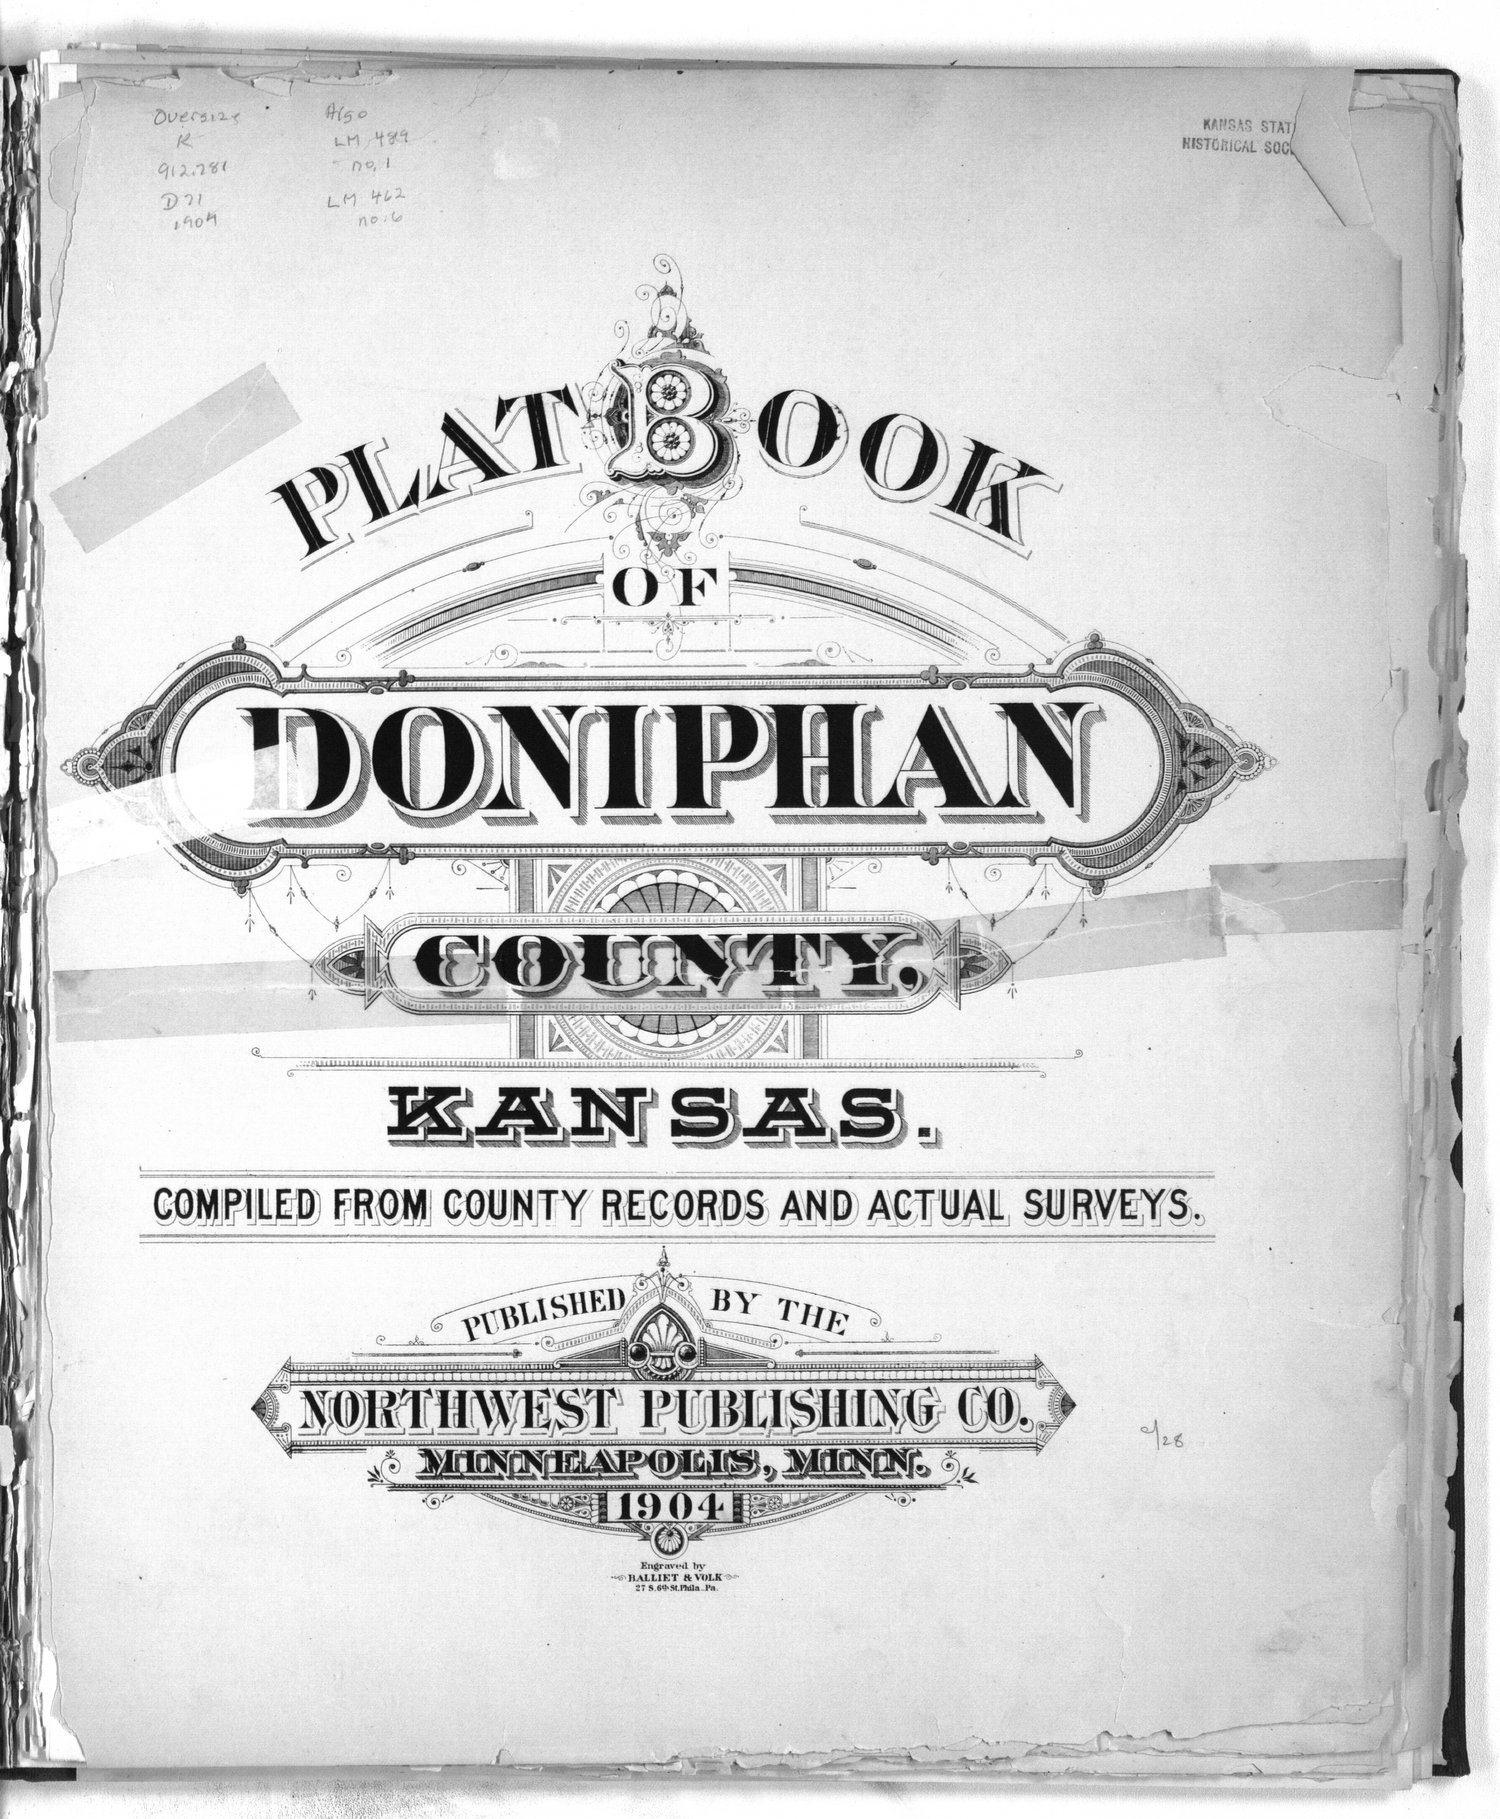 Plat book of Doniphan County, Kansas - Title Page